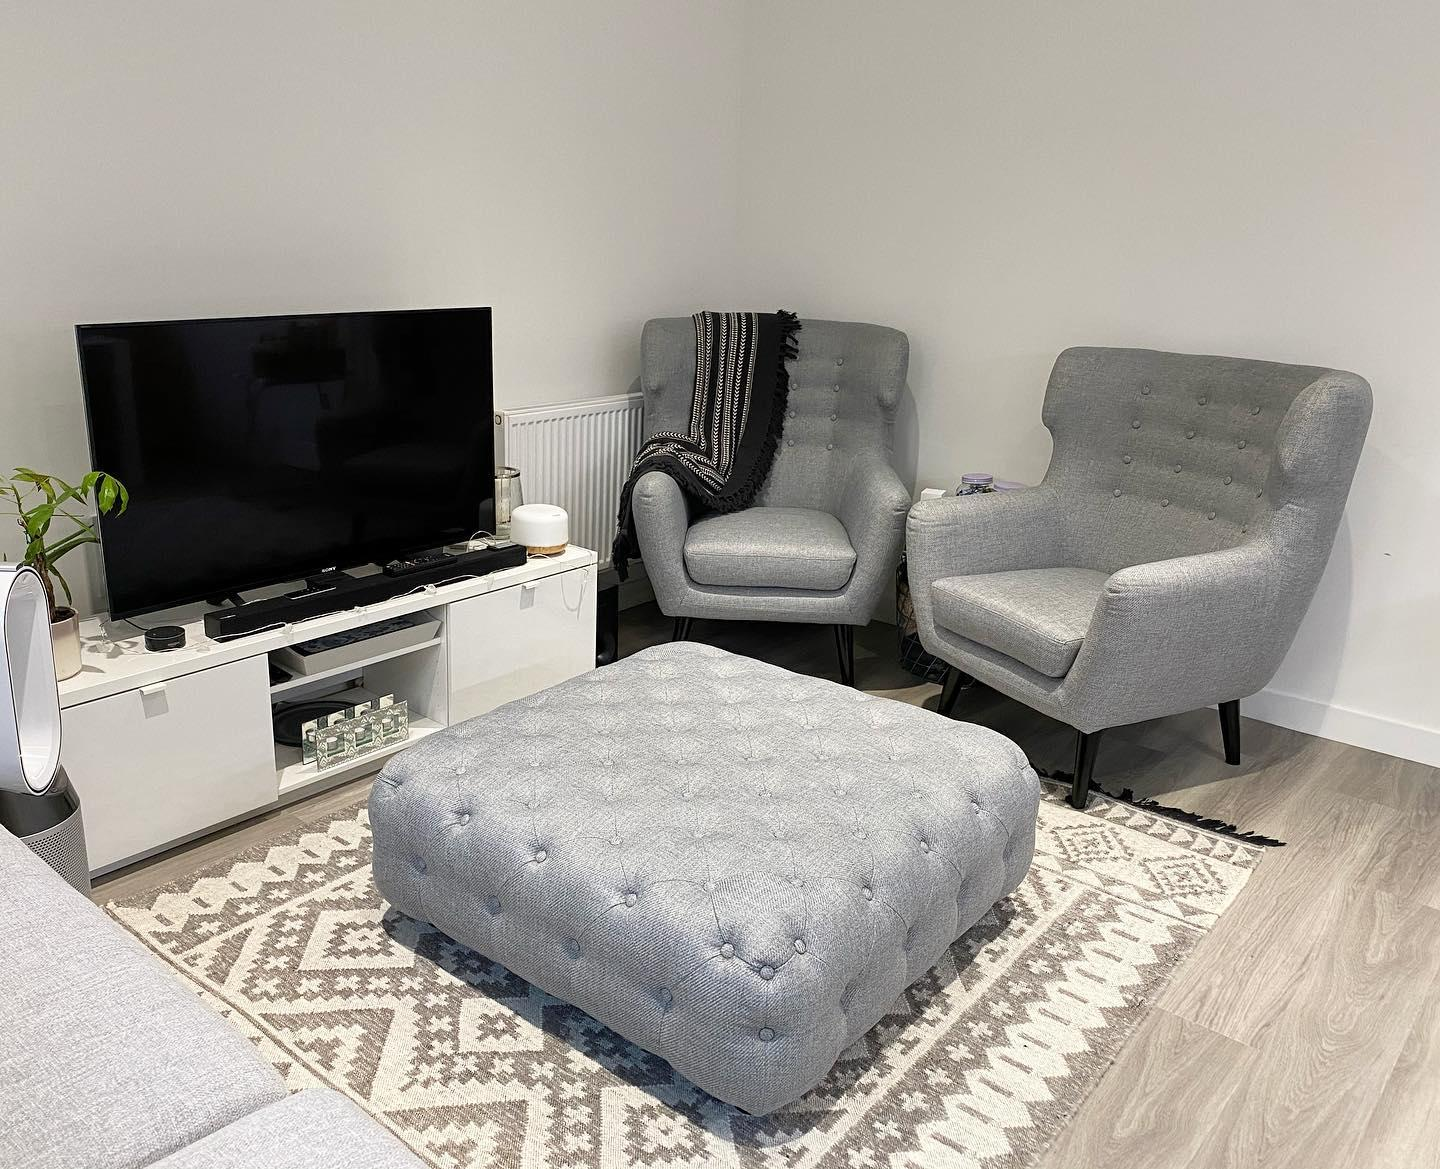 Canapé Moelleux Assise Profonde branagh, canapé chesterfield 2 places, gris perle   made